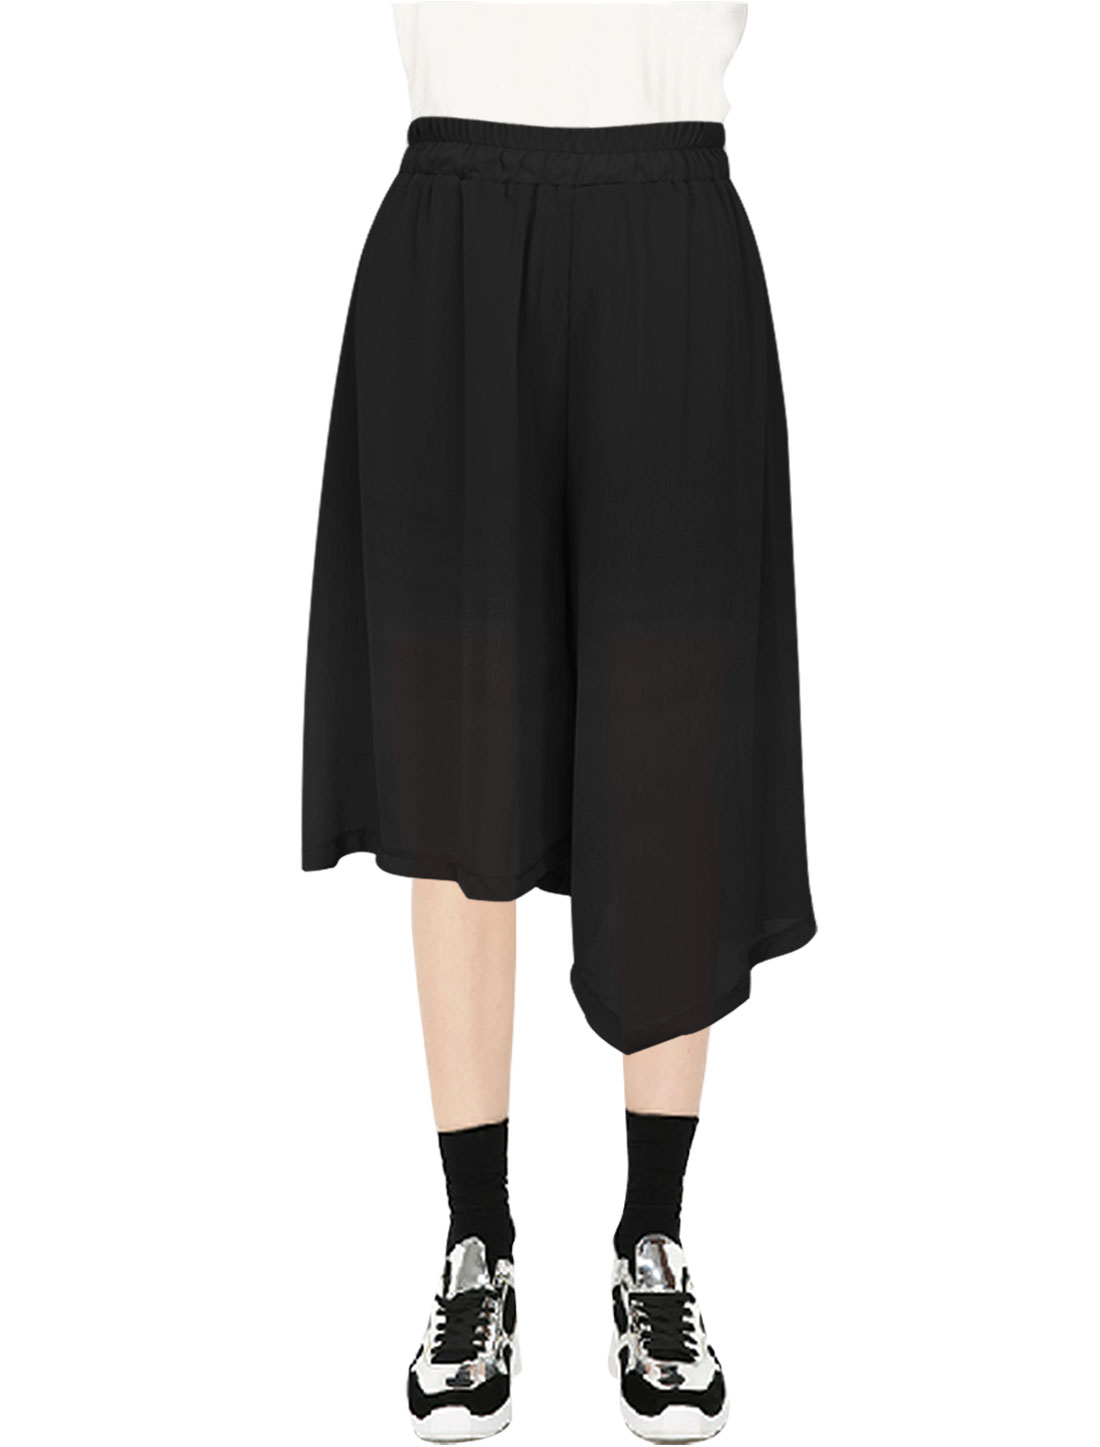 Ladies Elastic Cuffs Design Partially Lined Wide Leg Pants Black XS